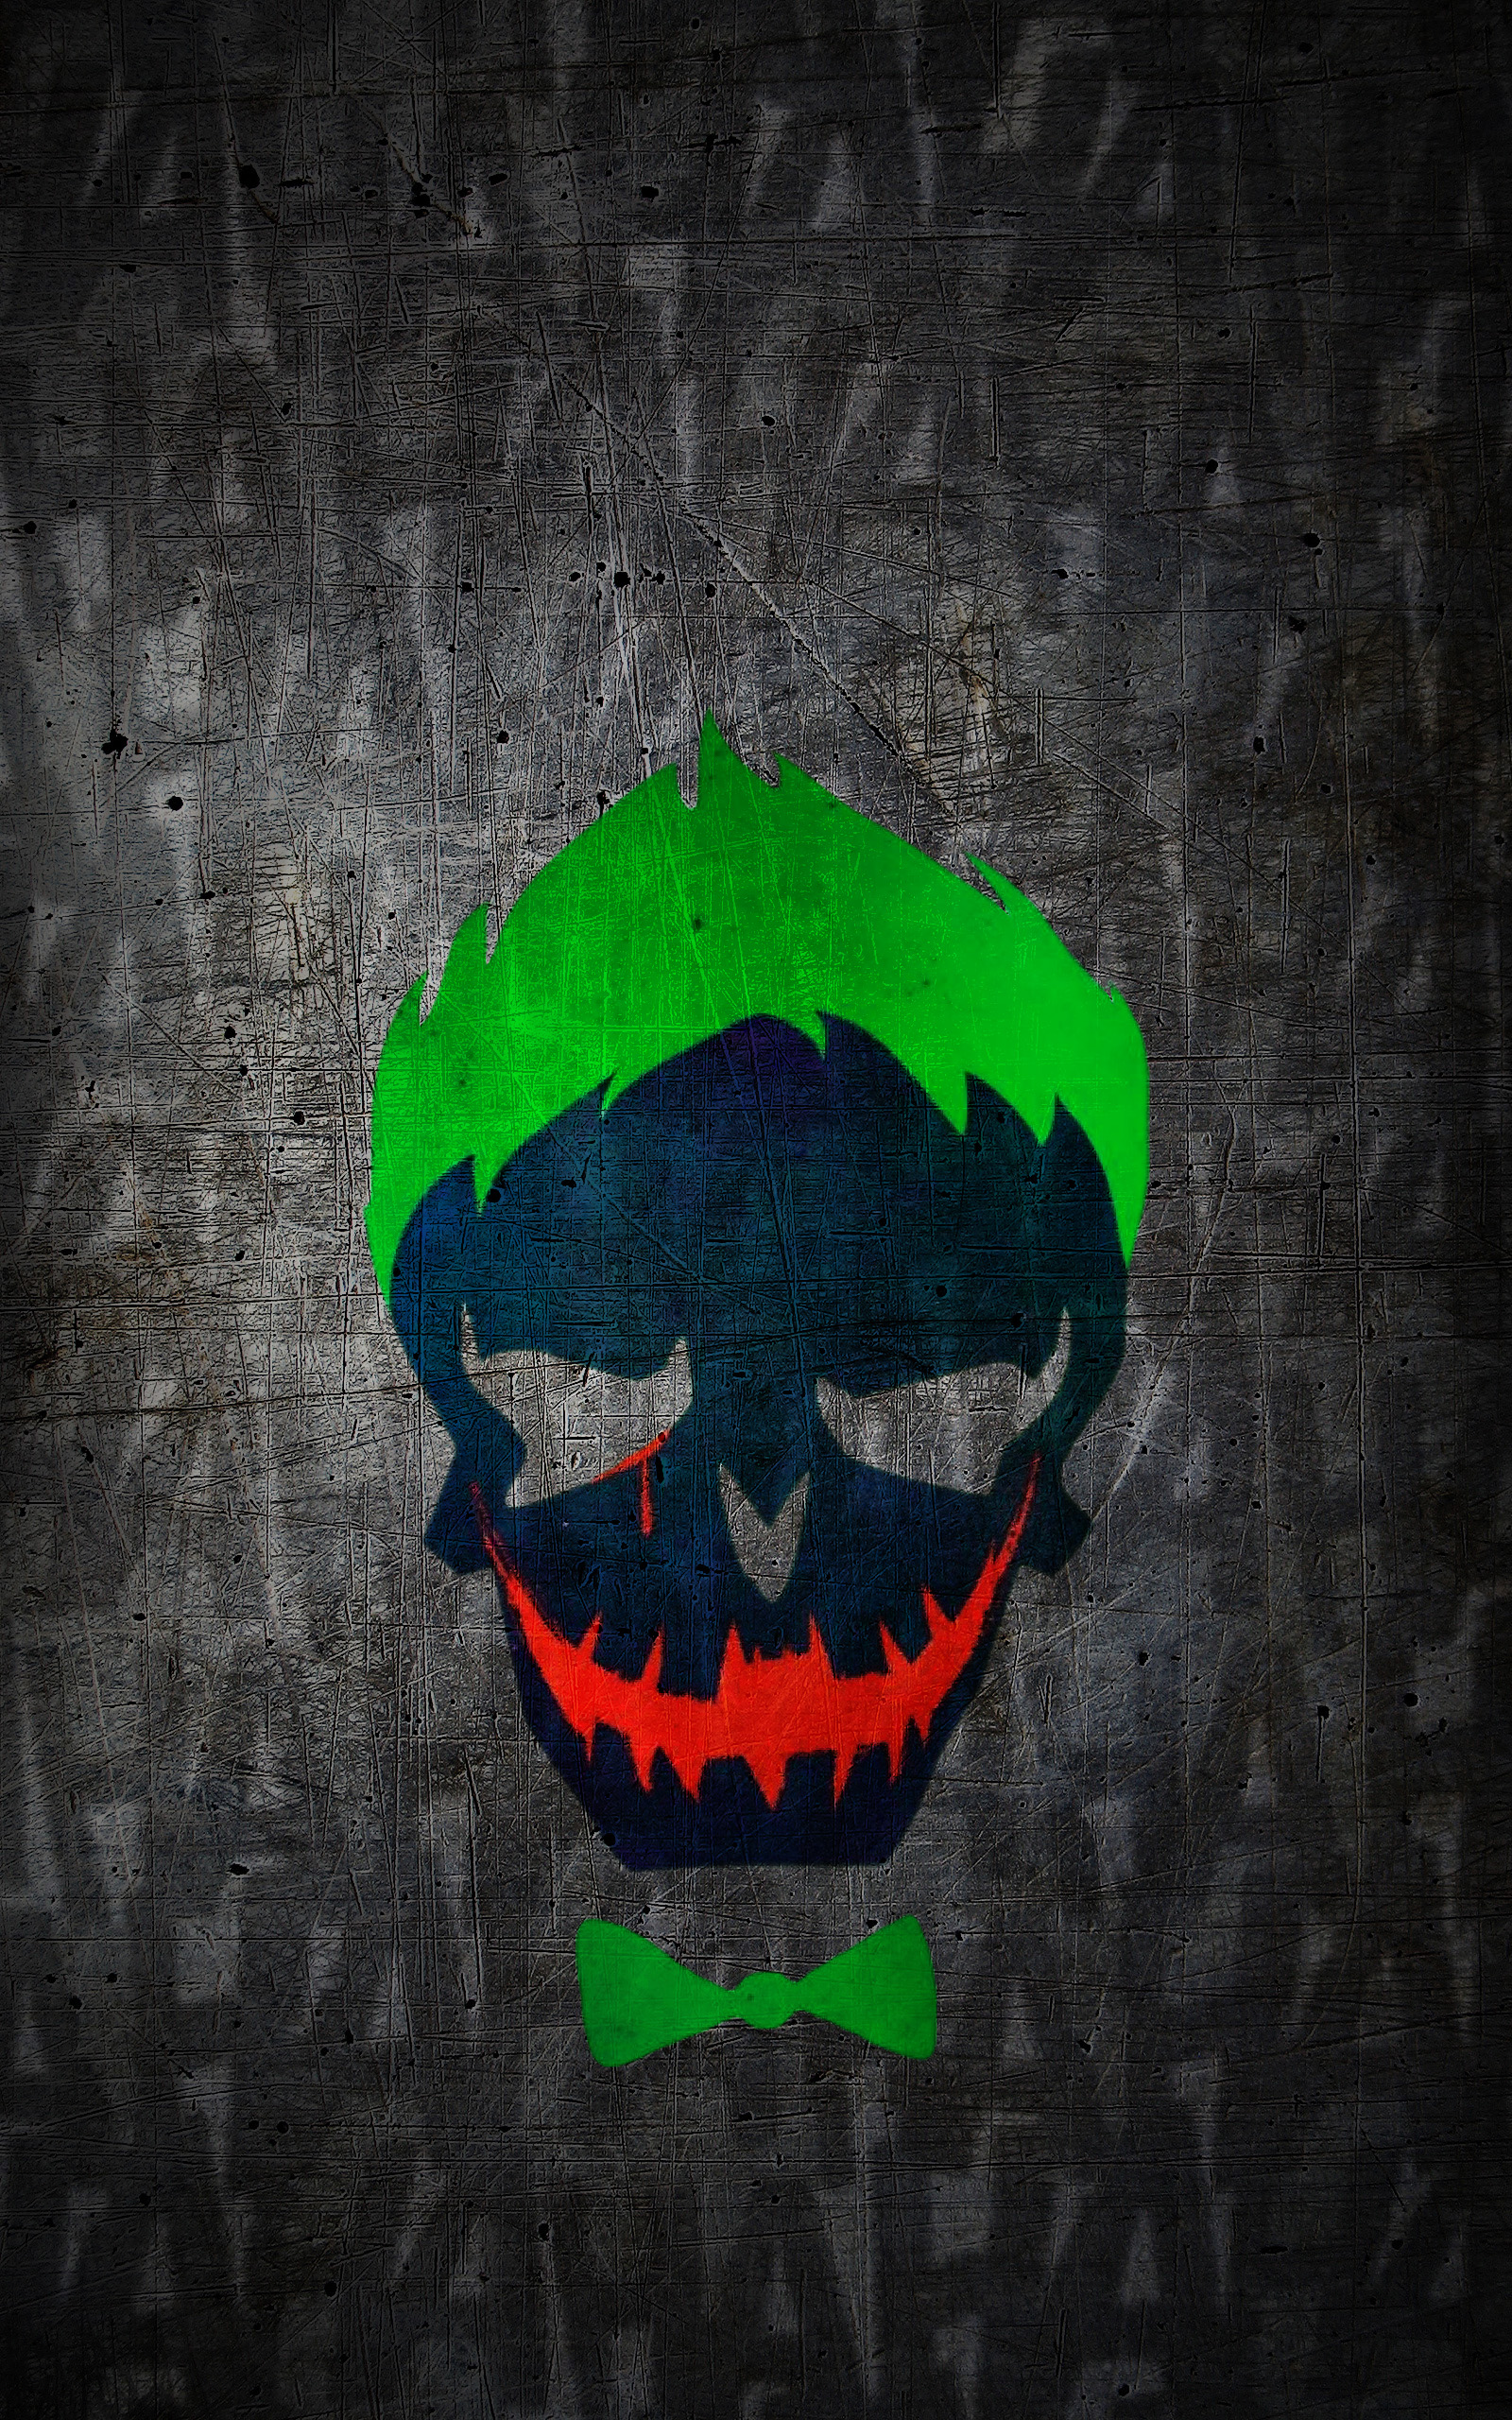 SuicideSquad Joker HD Wallpaper iPhoneAndroid by Jaackeden on